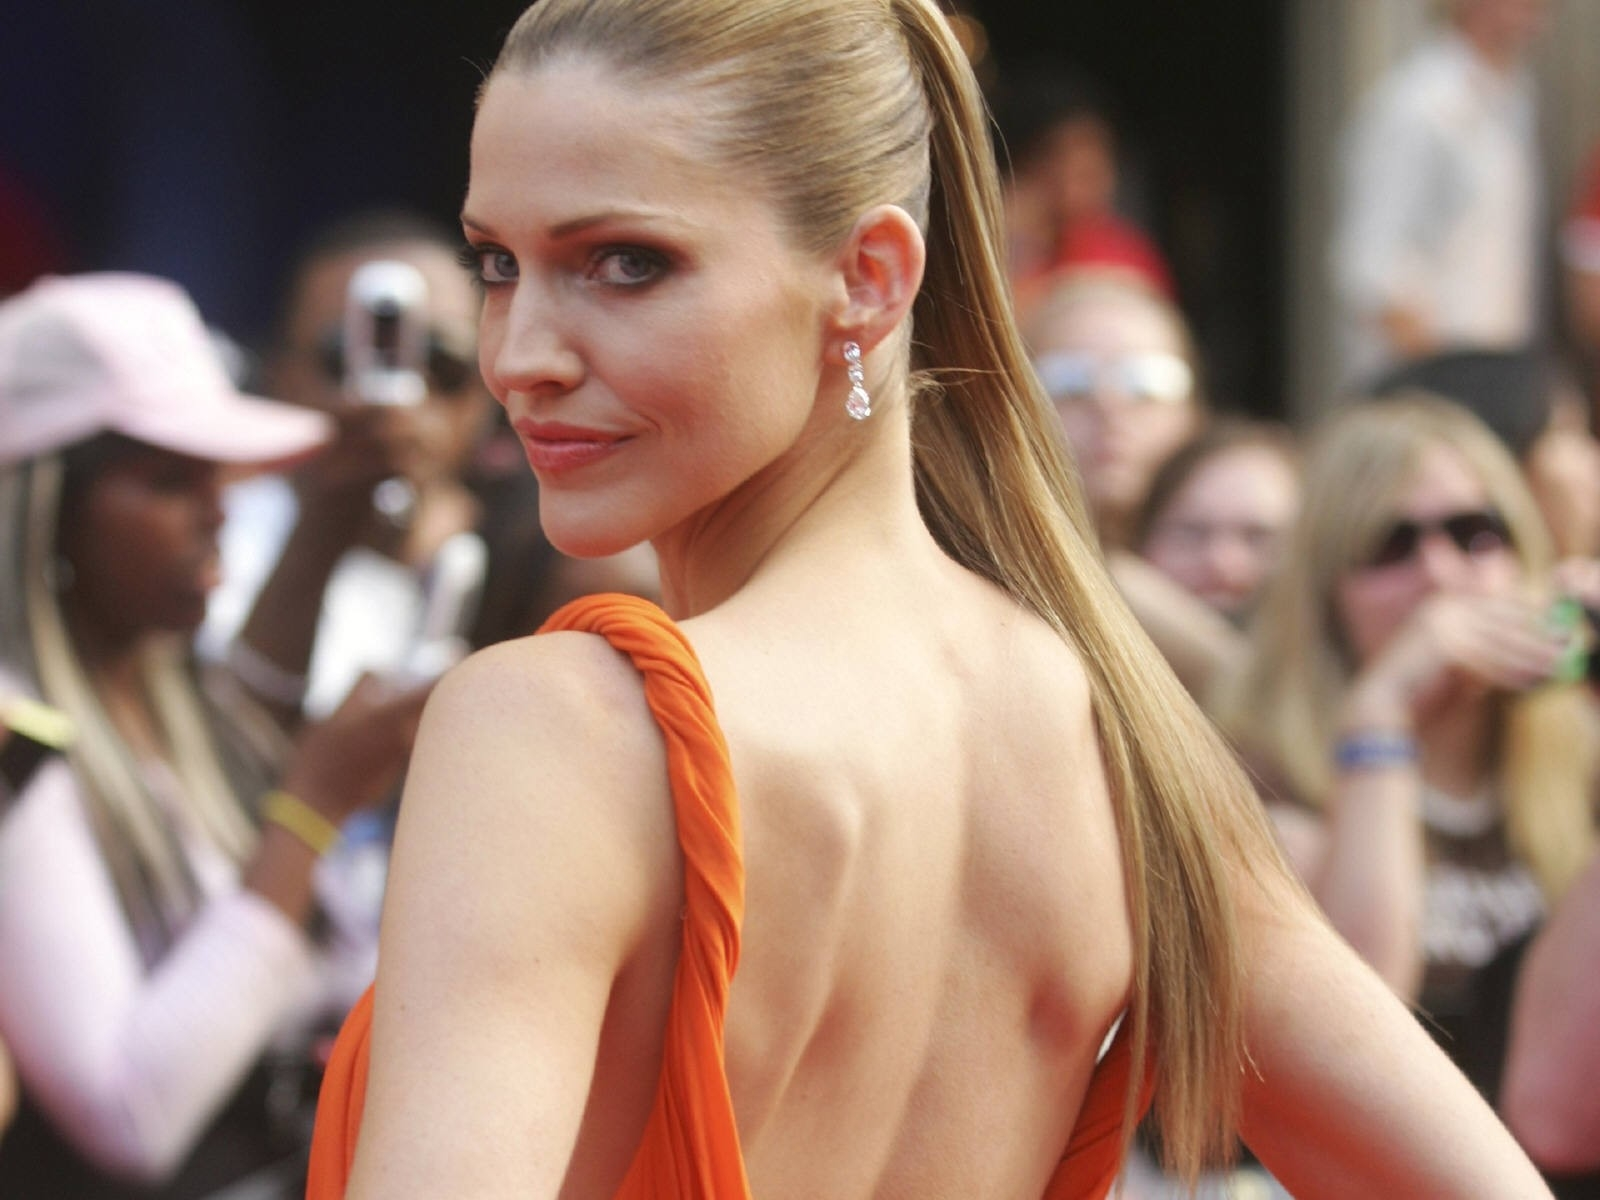 Wallpaper di Tricia Helfer sul red carpet